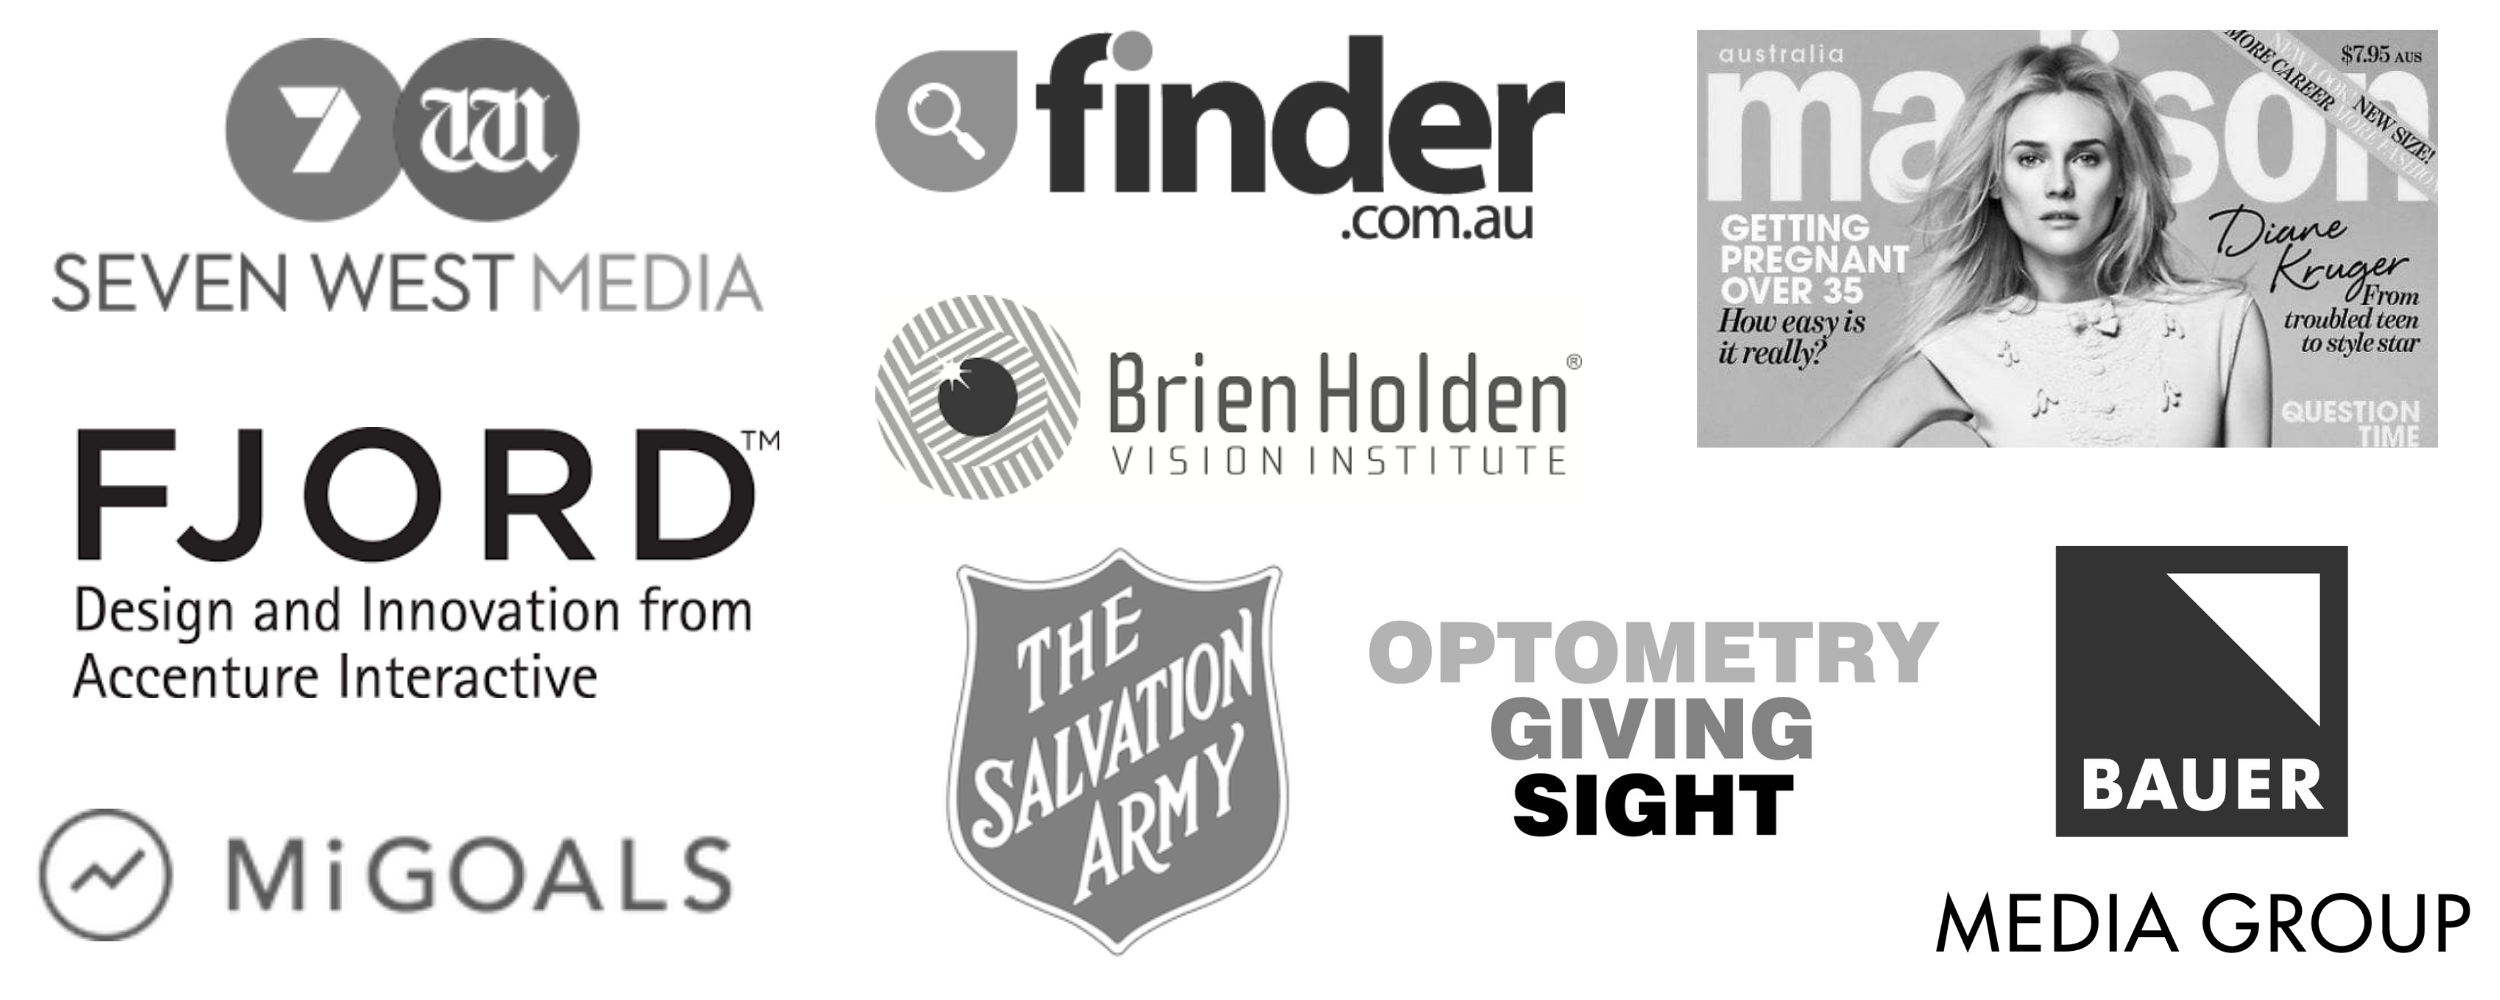 Brands-Ive-Worked-With.png